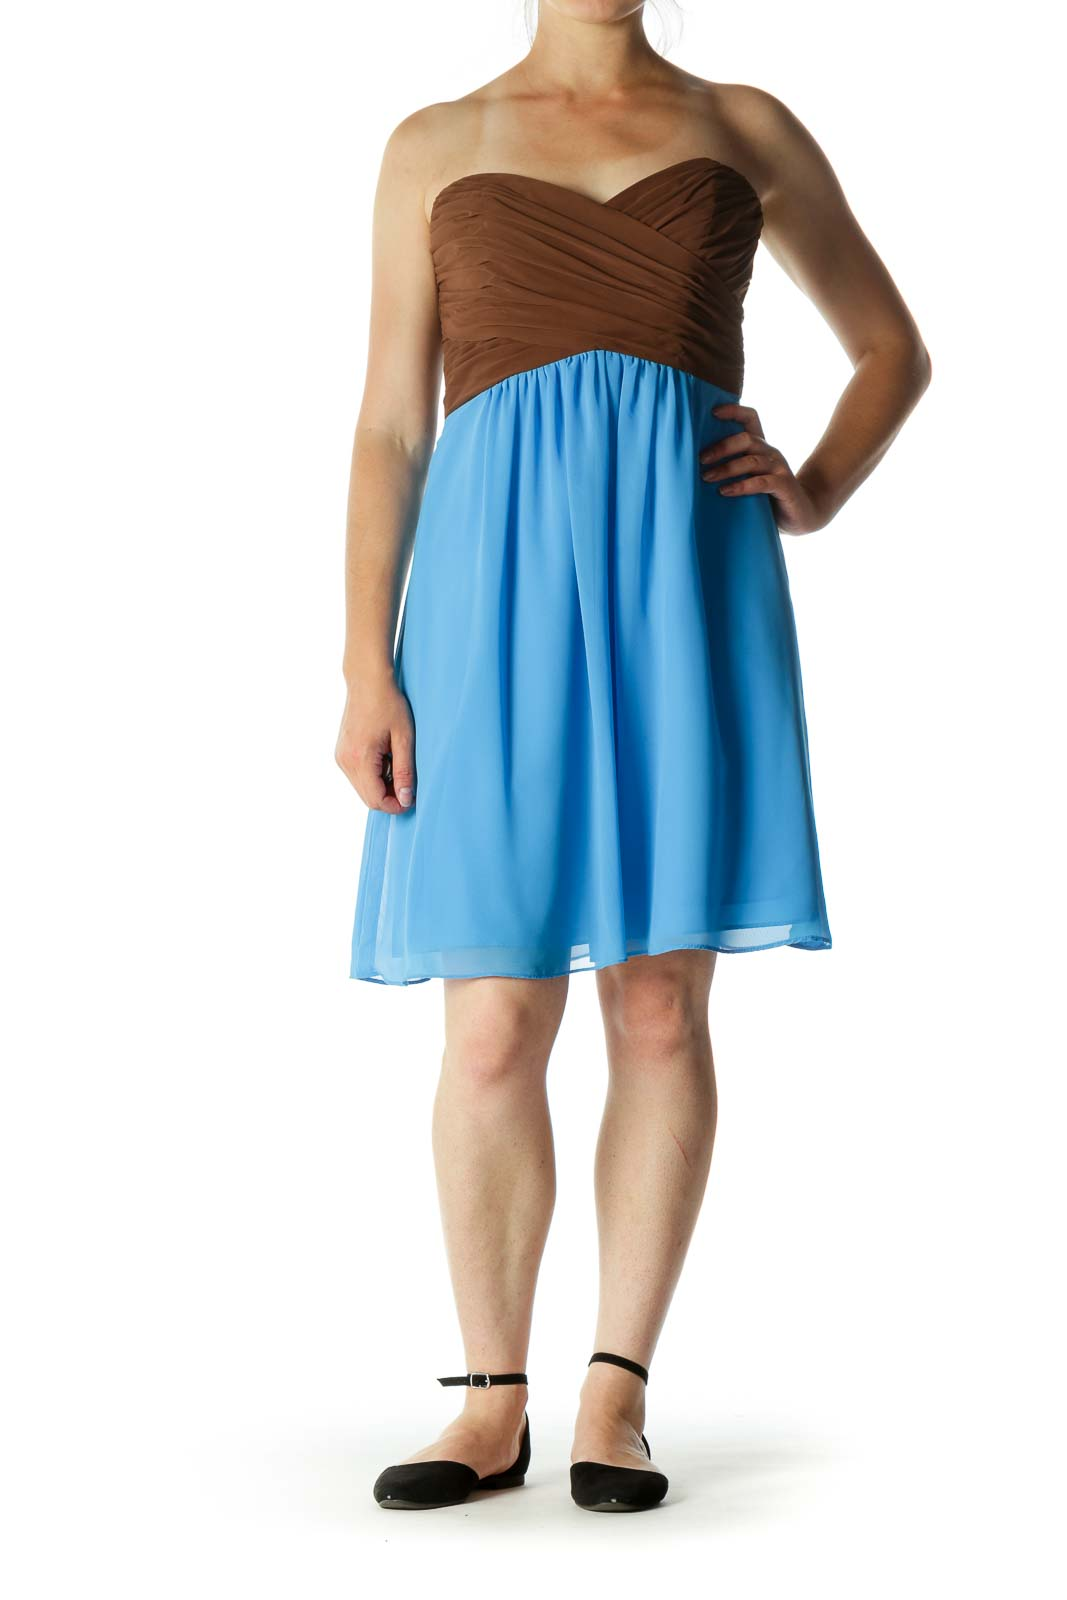 Blue and Brown Pleated Strapless Dress